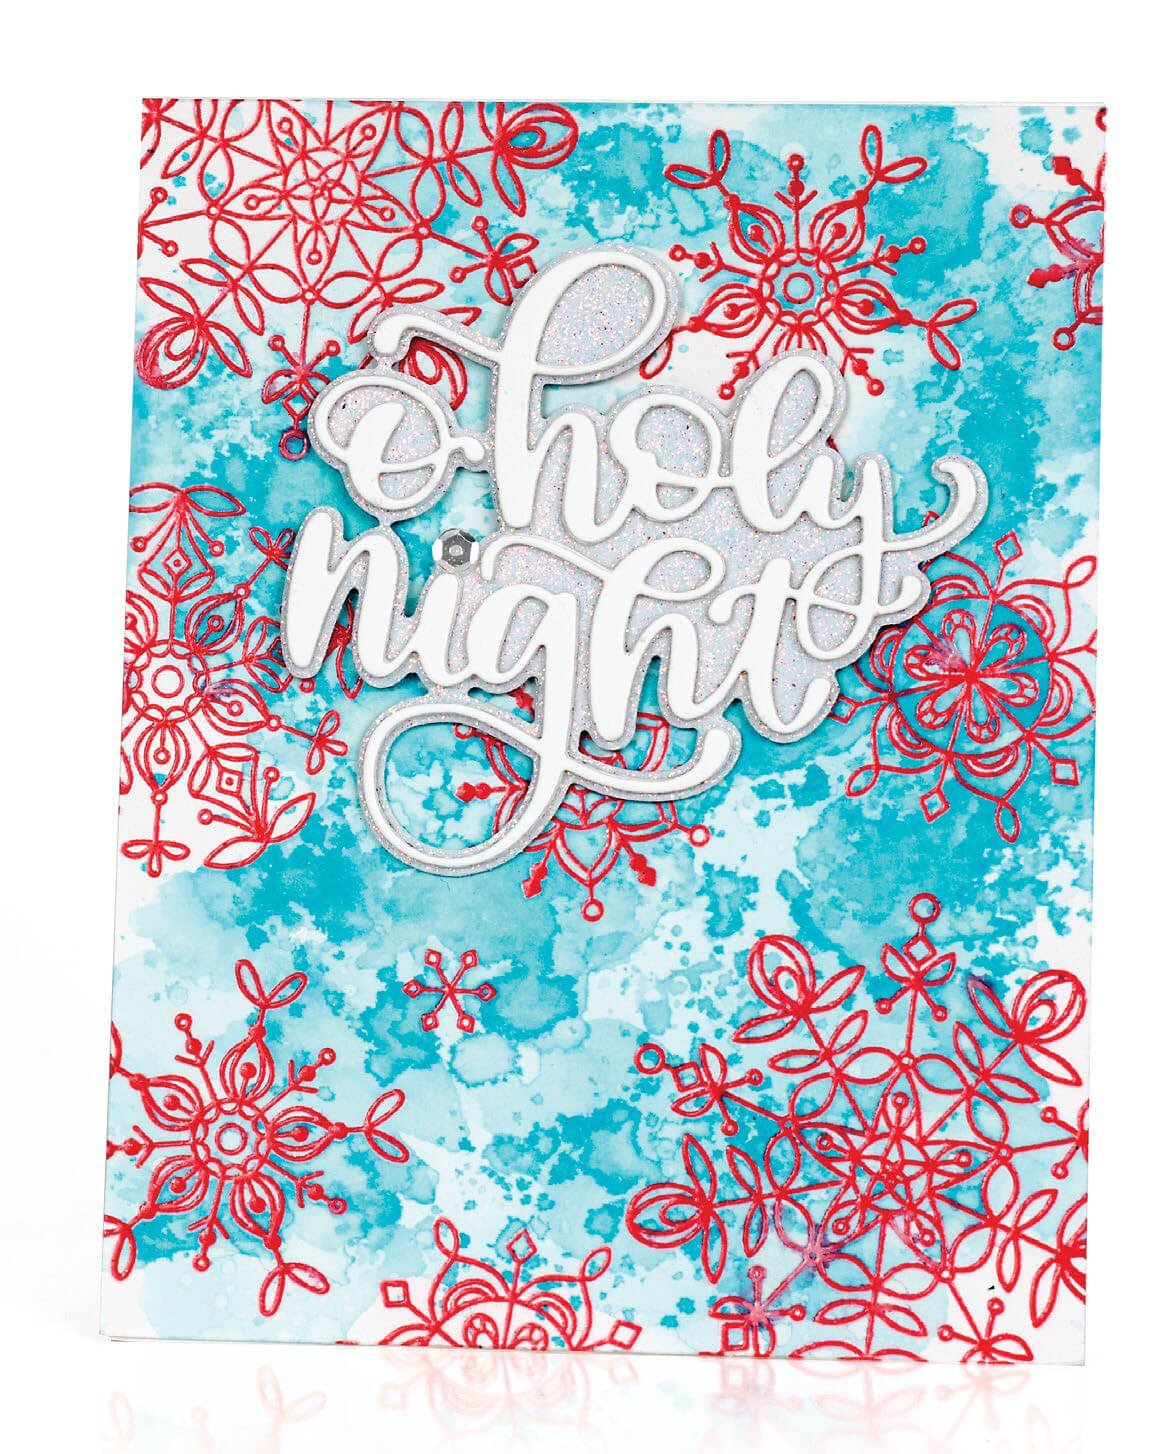 SCT Winter 2018 - O Holy Night by Jenn Shurkus